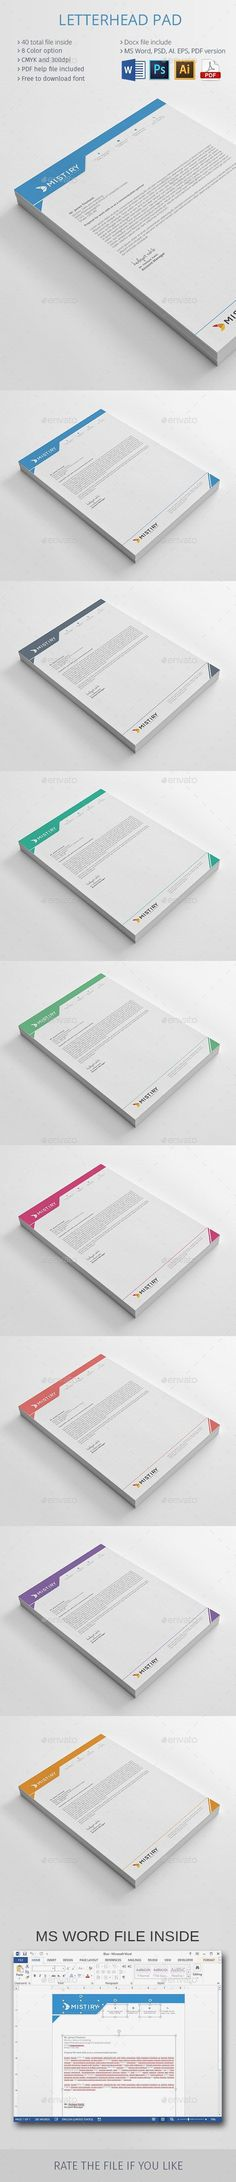 PSD Letterhead Template - 51+ Free PSD Format Download! Free - free business stationery templates for word